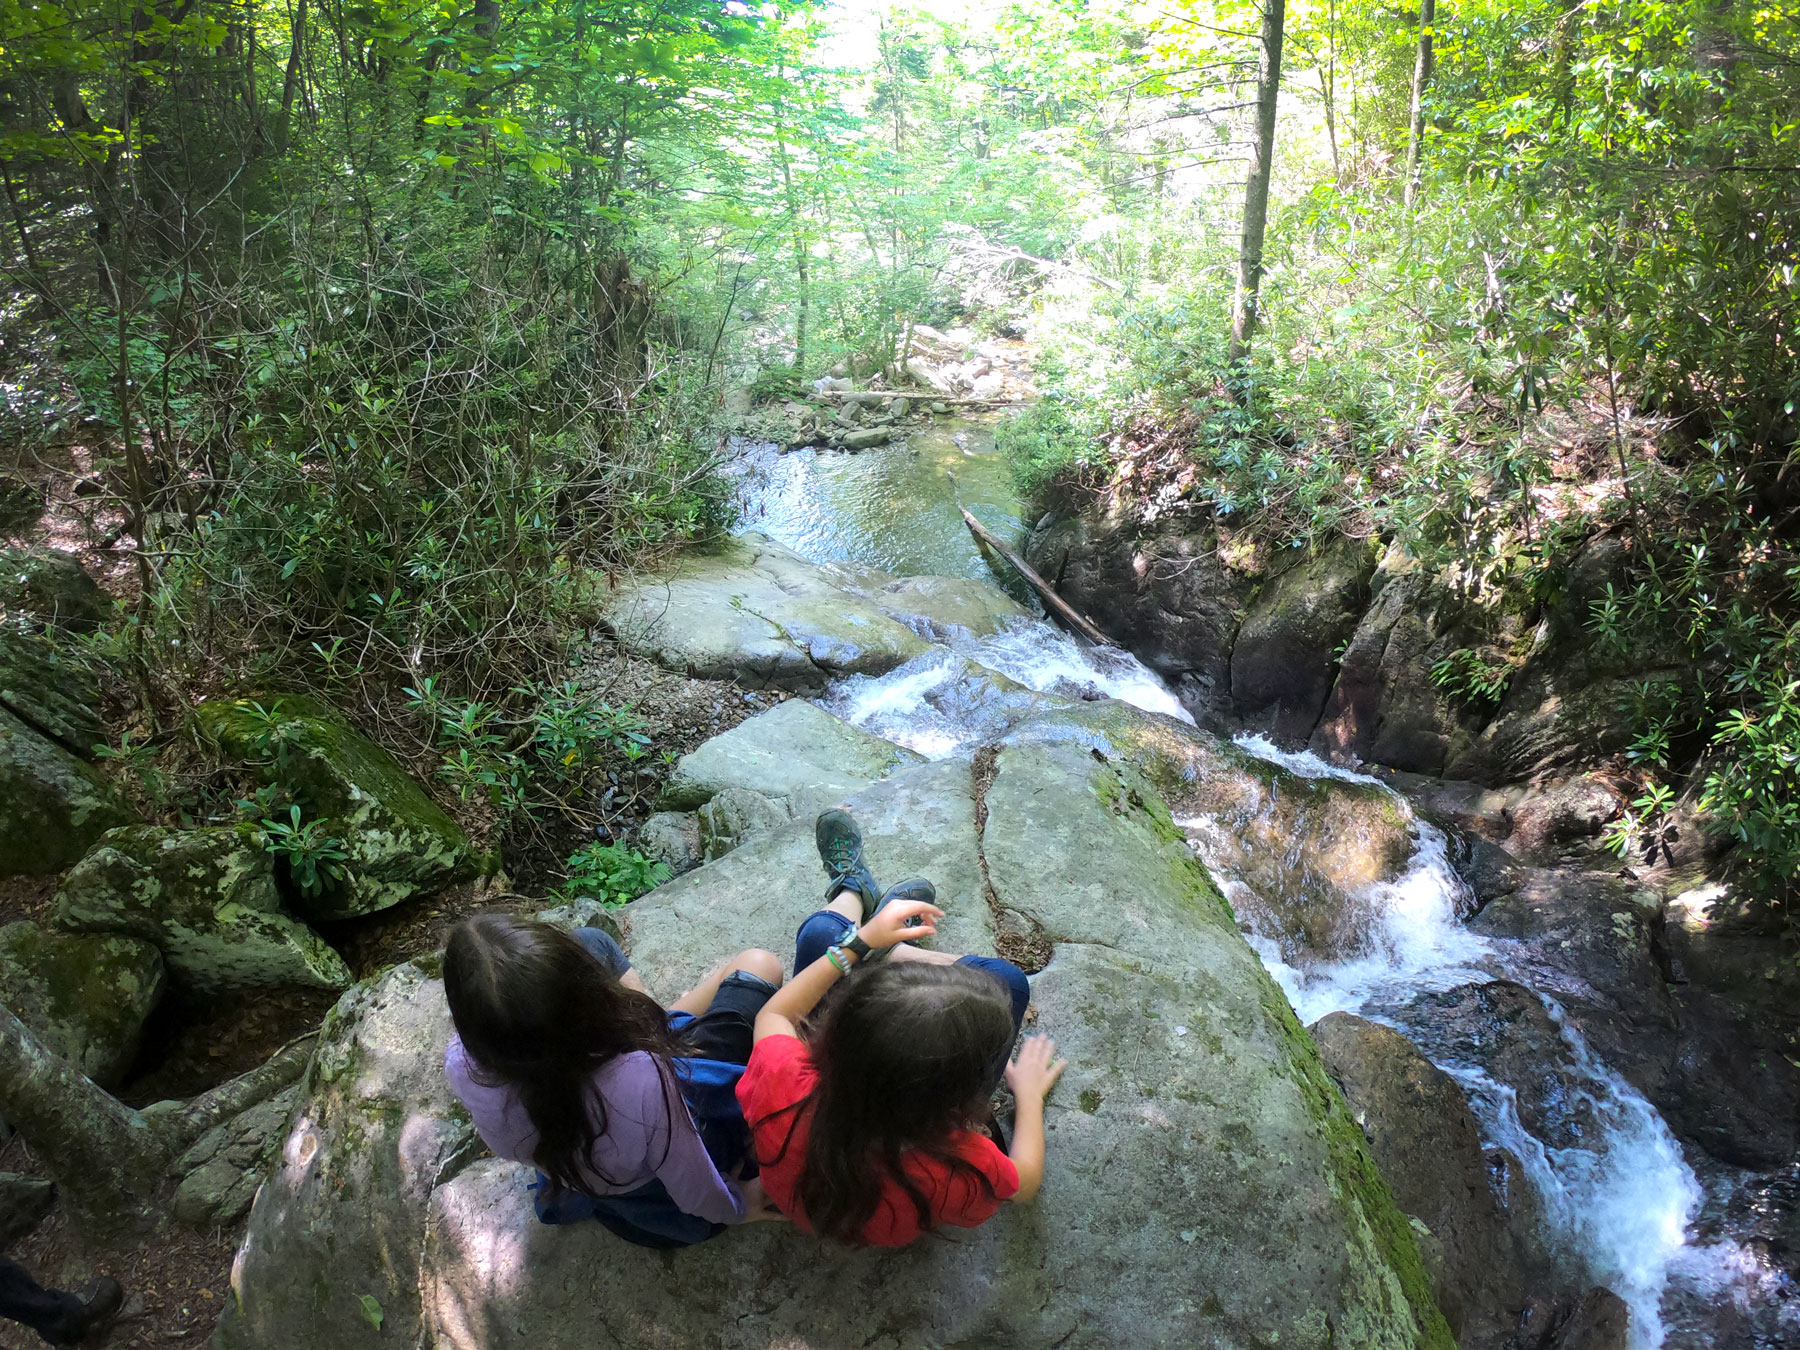 Two girls sitting on bouldering overlooking the Cabin Creek waterfall while camping at Grayson Highlands State Park, Virginia